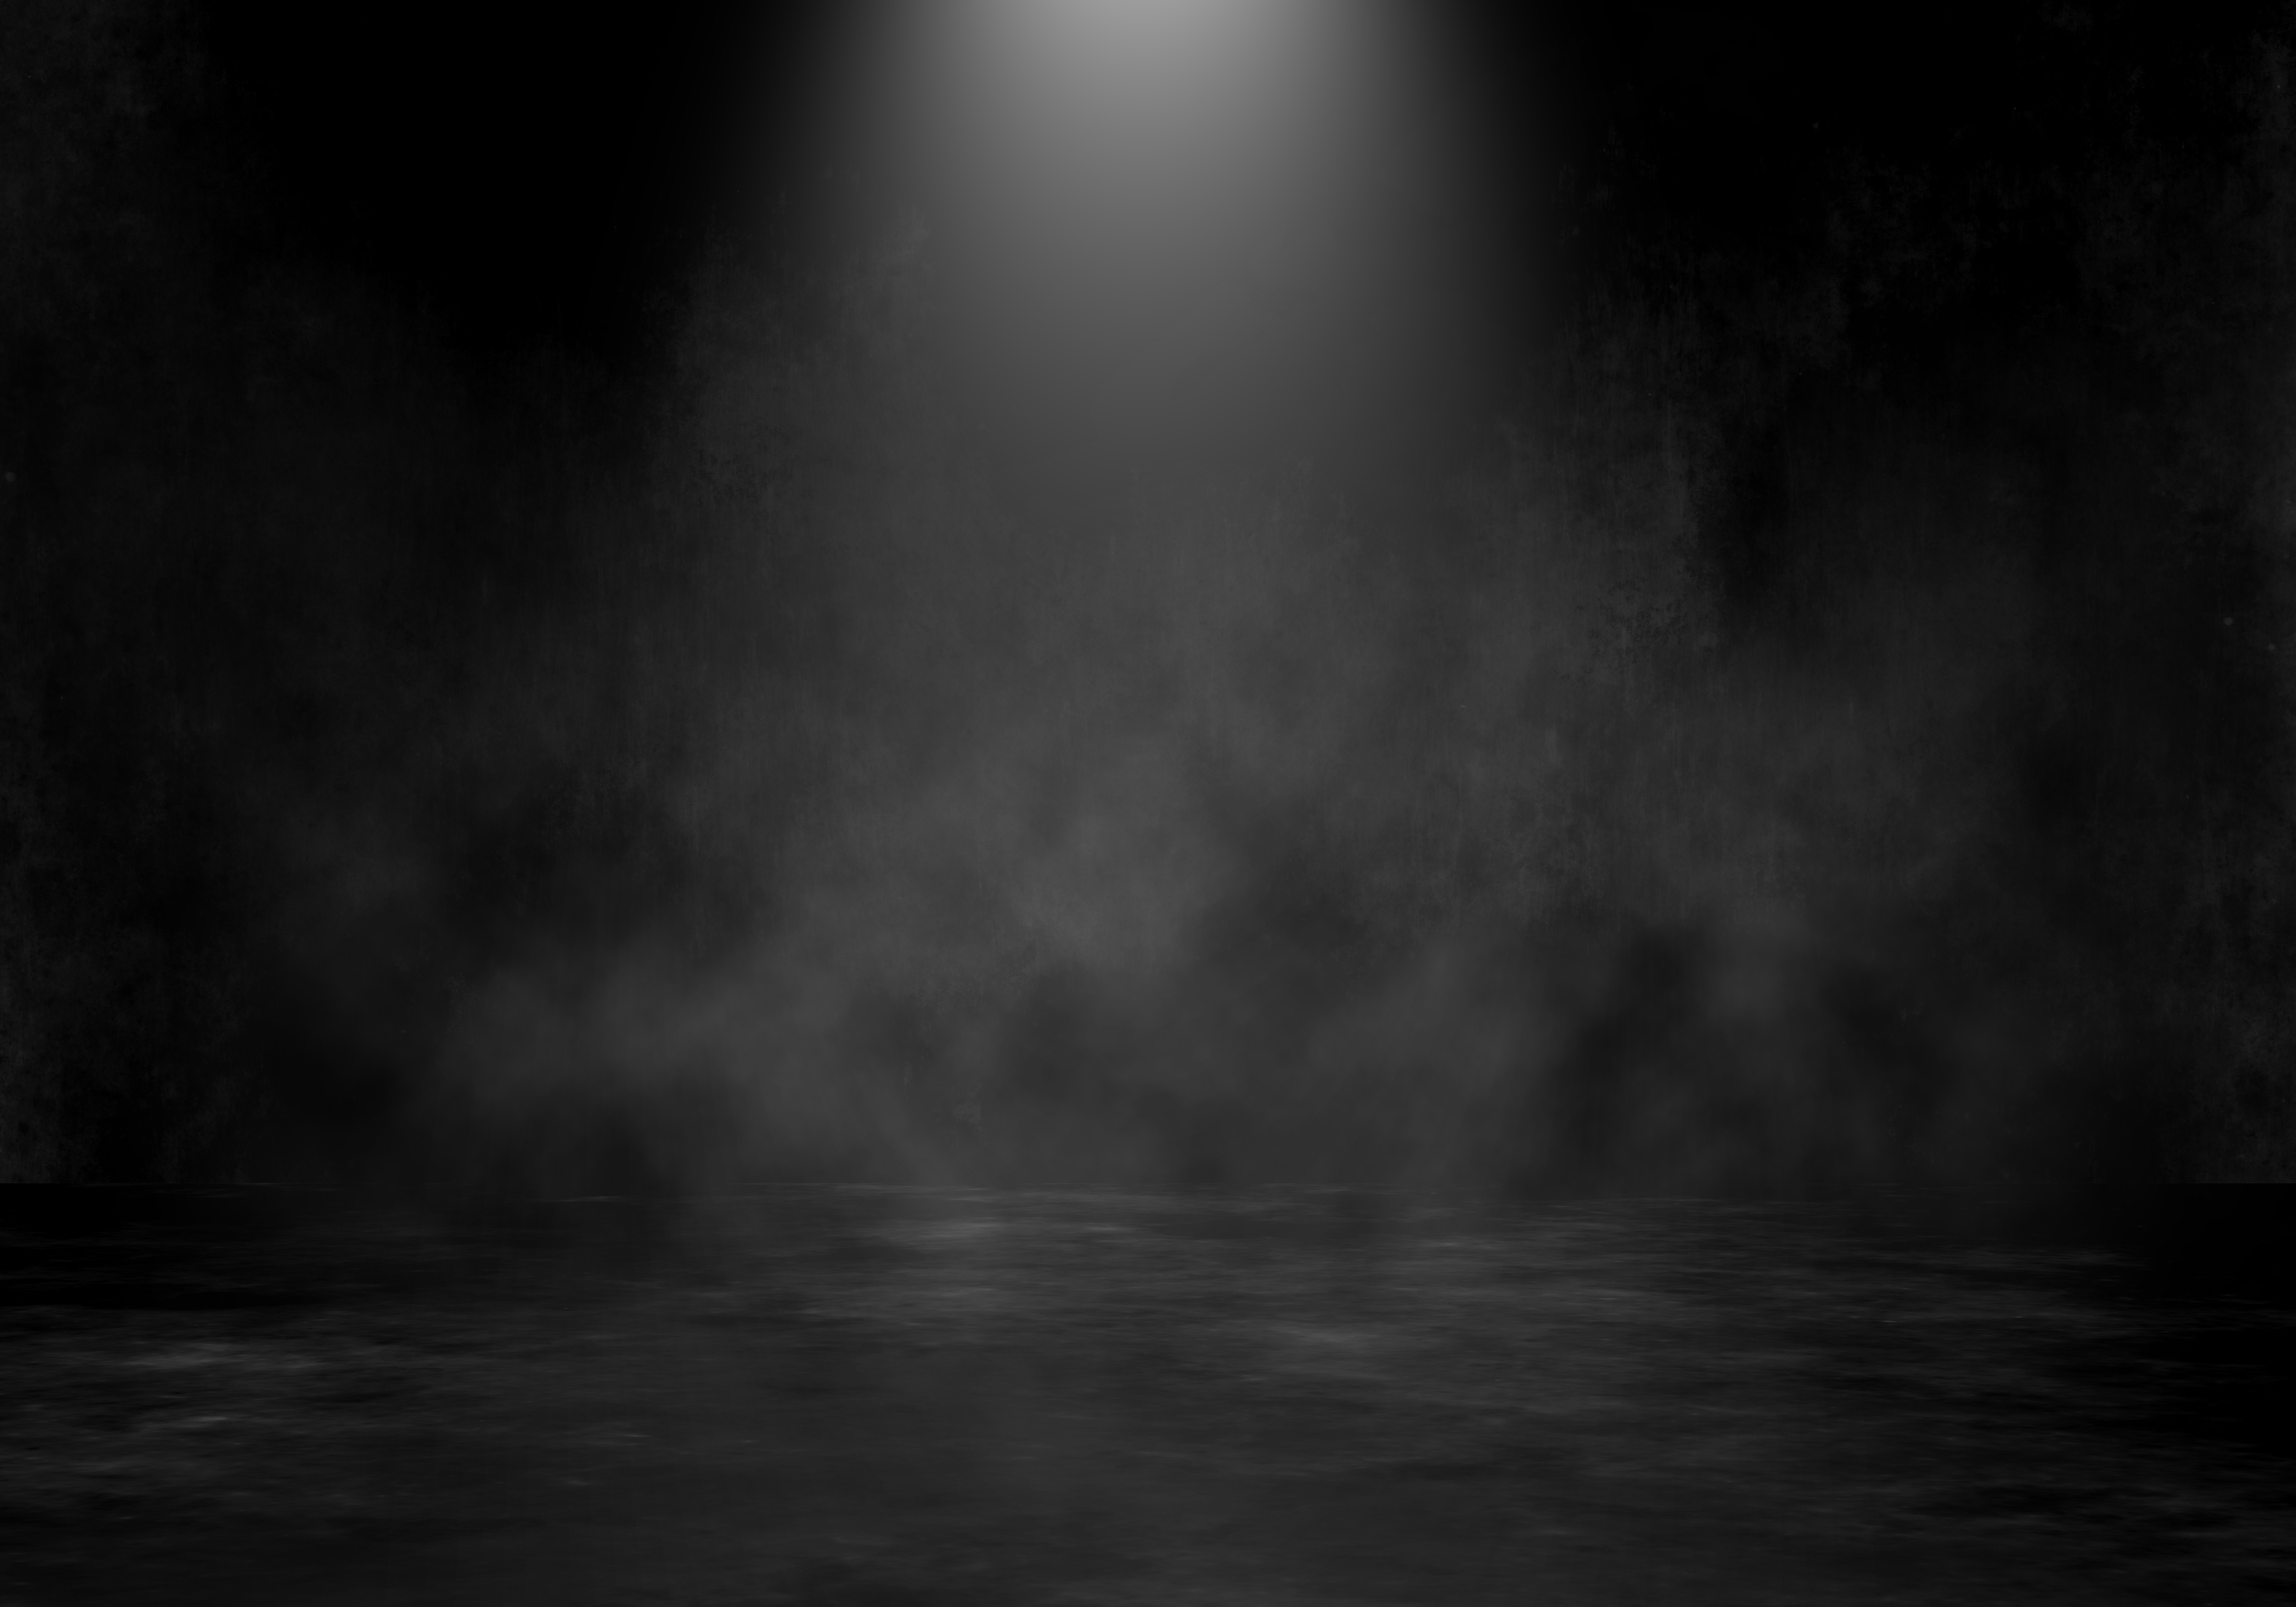 3D grunge room interior with spotlight and smoky atmosphere